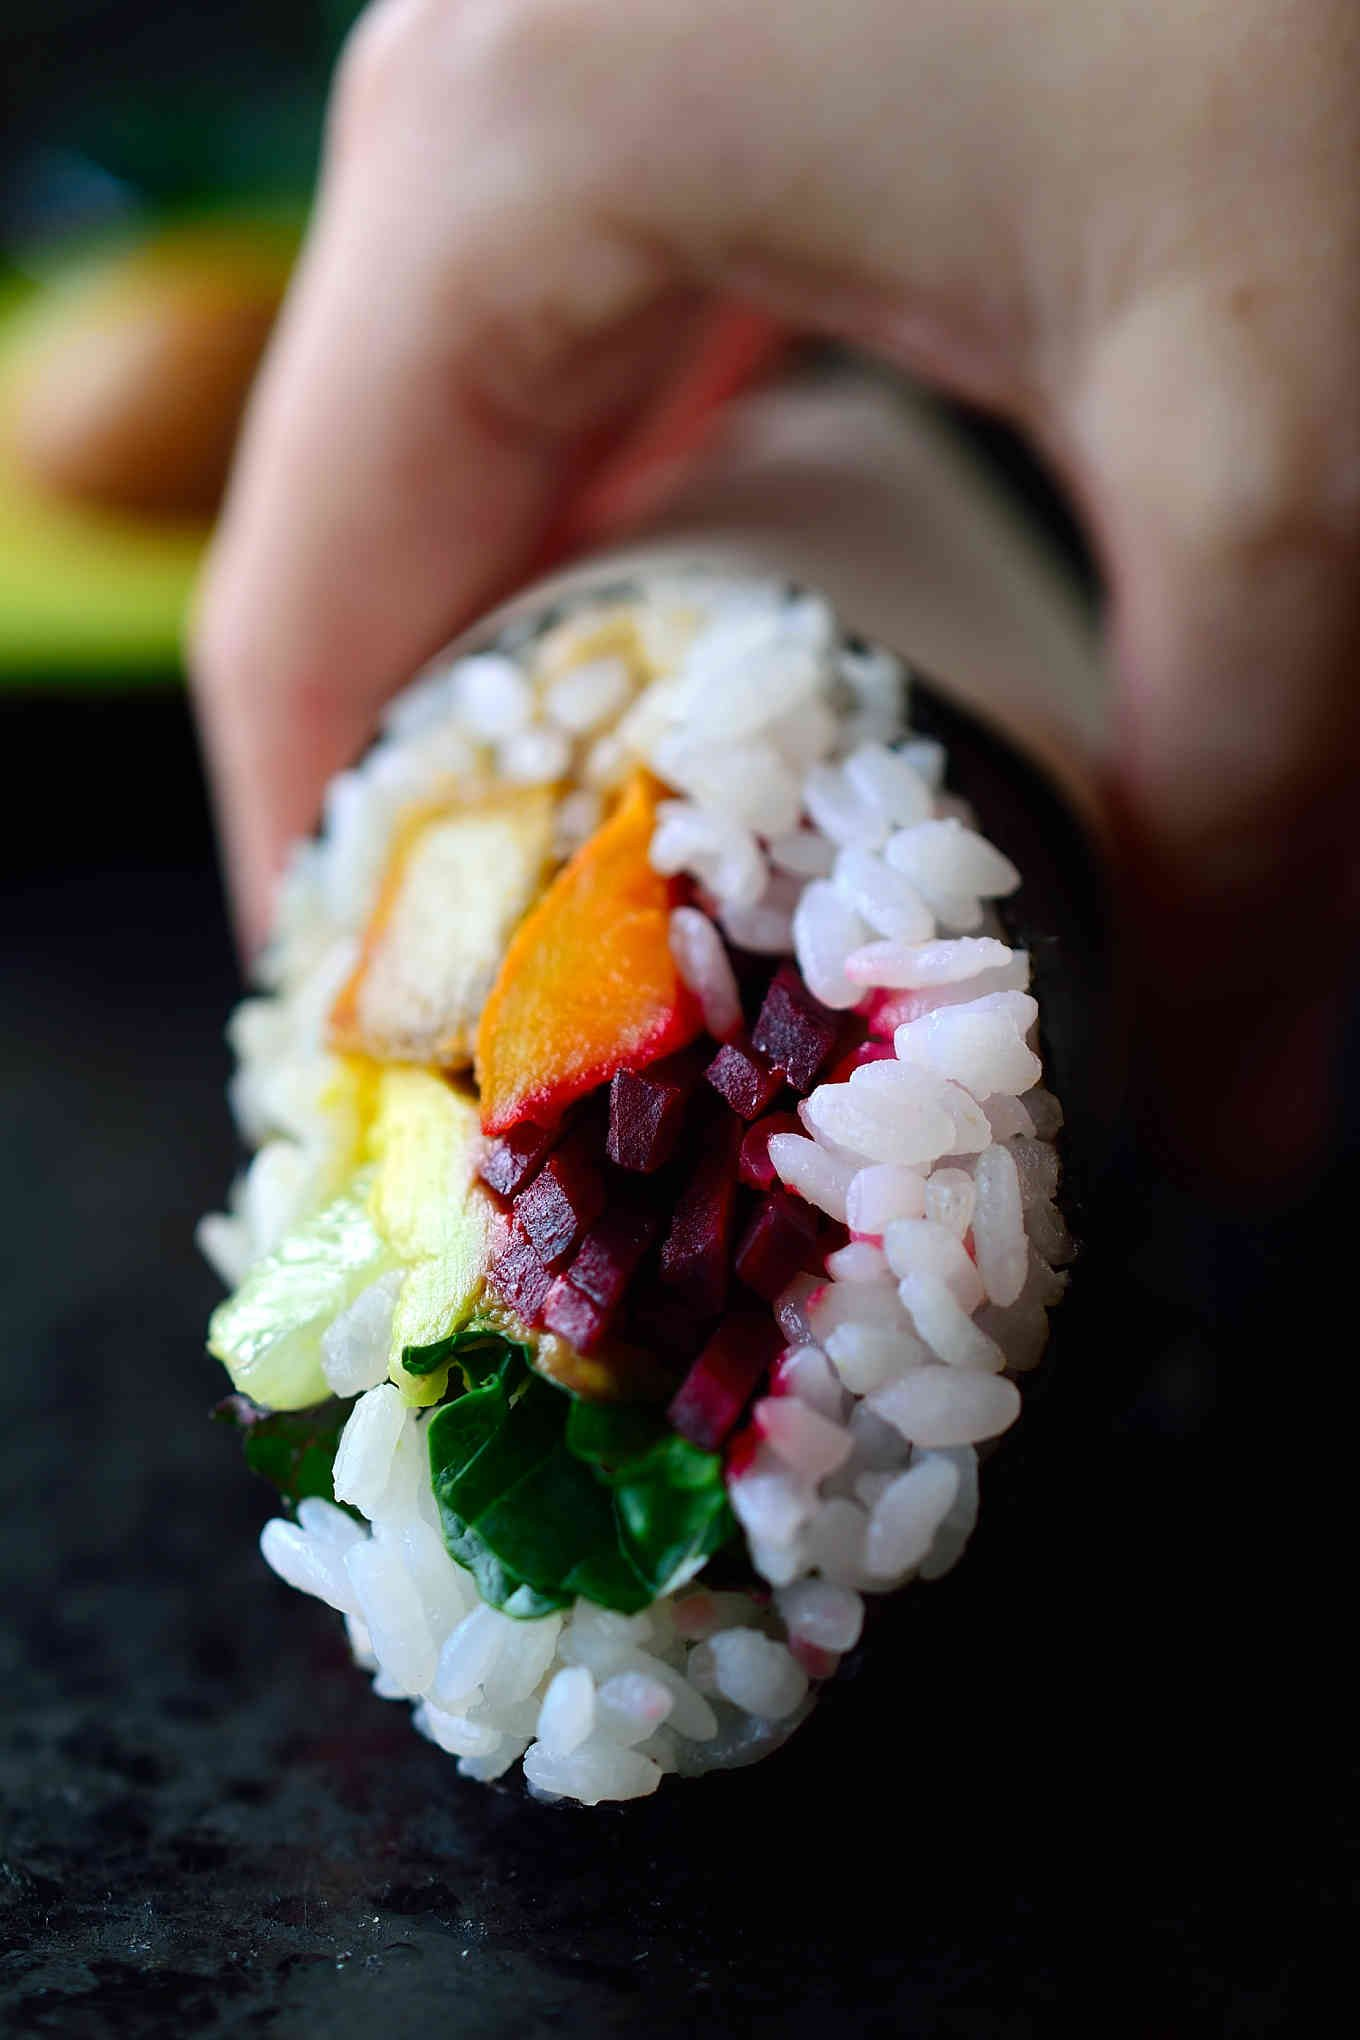 This vegan sushi burrito recipe is the marriage between two great foods in one perfect hand-held package. They're easy to make, packed with flavour and super adaptable to whatever fillings you choose. I've stuffed sushi burritos with a rainbow of vegetables and deliciously crispy fried teriyaki tofu.